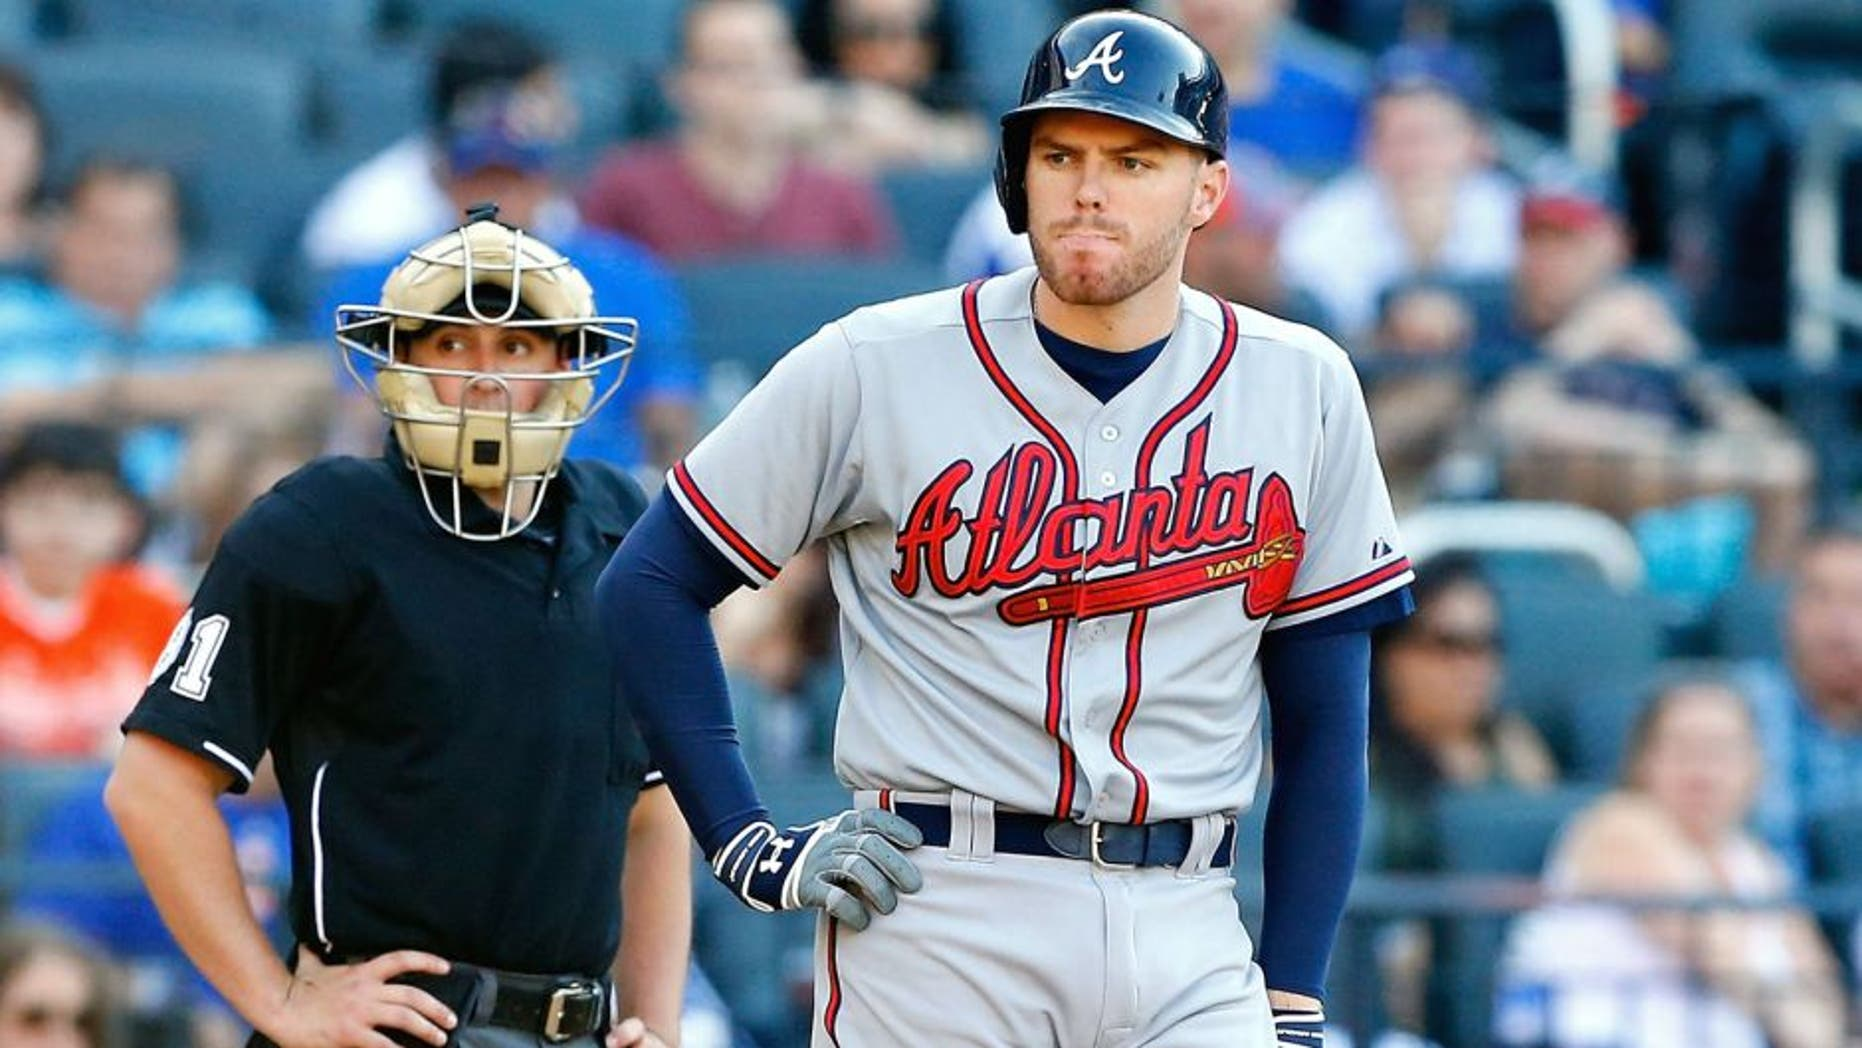 NEW YORK, NY - JUNE 13: Freddie Freeman #5 of the Atlanta Braves in action against the New York Mets at Citi Field on June 13, 2015 in the Flushing neighborhood of the Queens borough of New York City. The Braves defeated the Mets 5-3 in eleven innings. (Photo by Jim McIsaac/Getty Images)